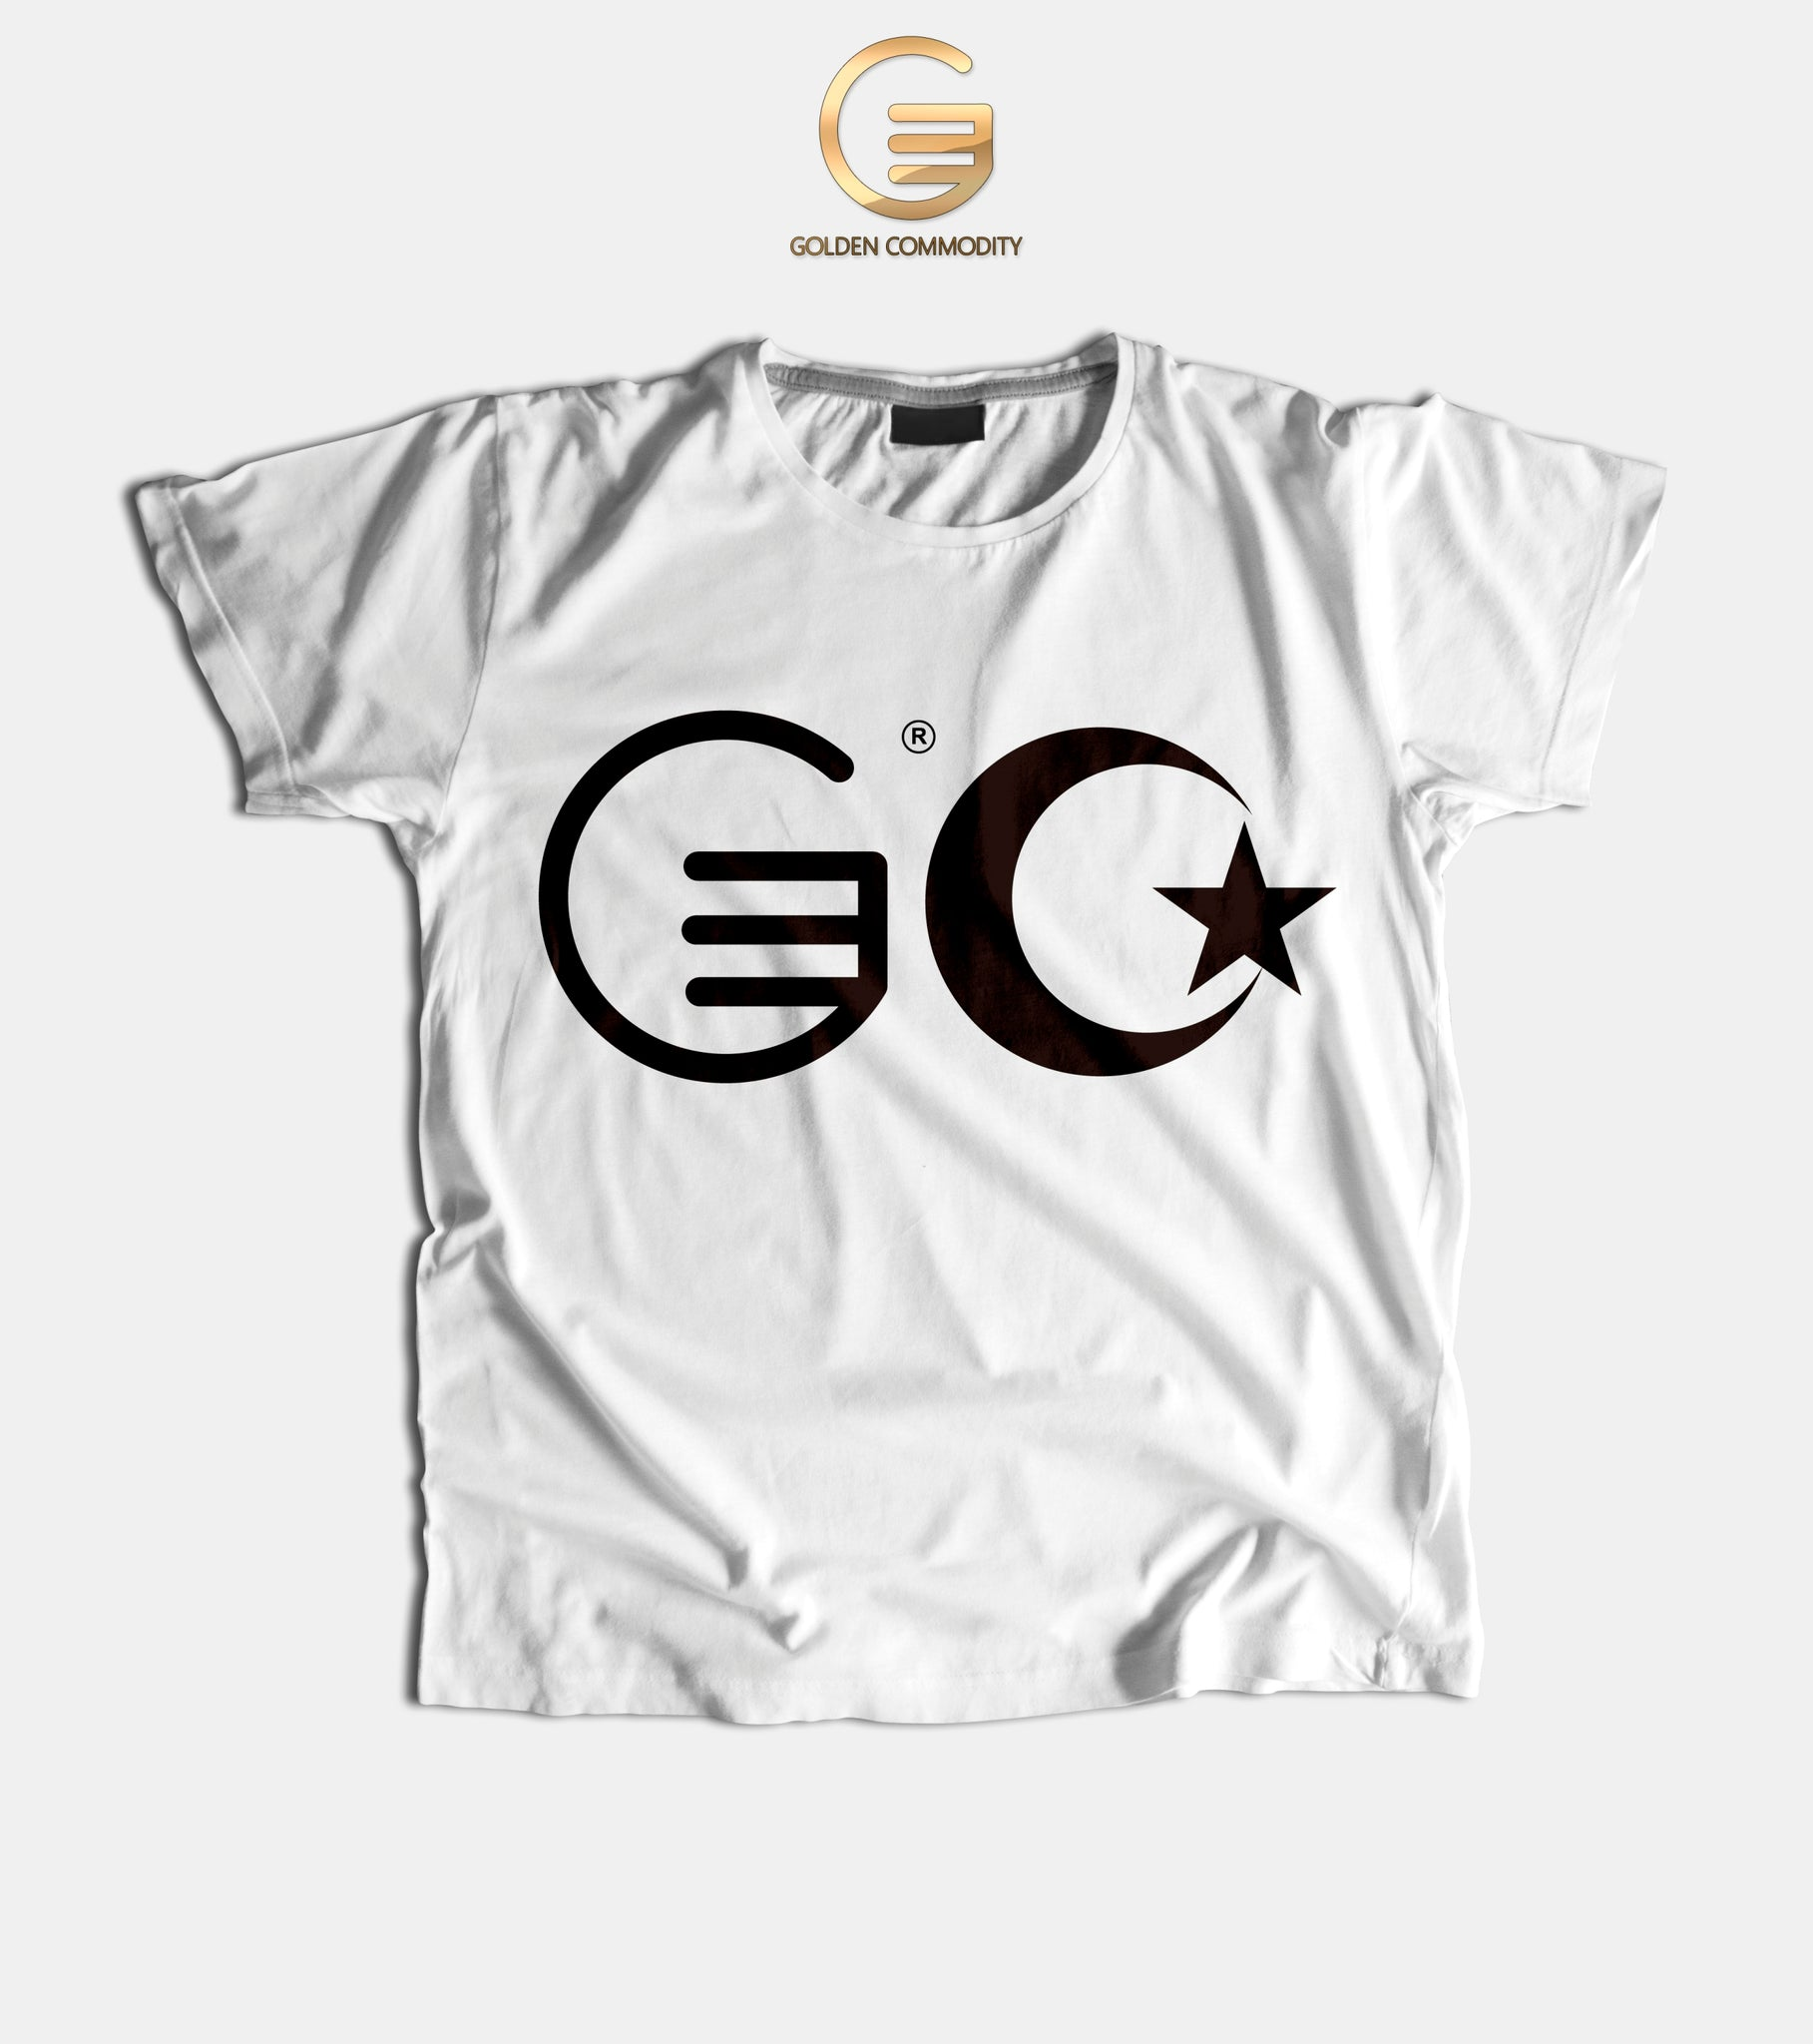 G & A Crescent Men's T-Shirt